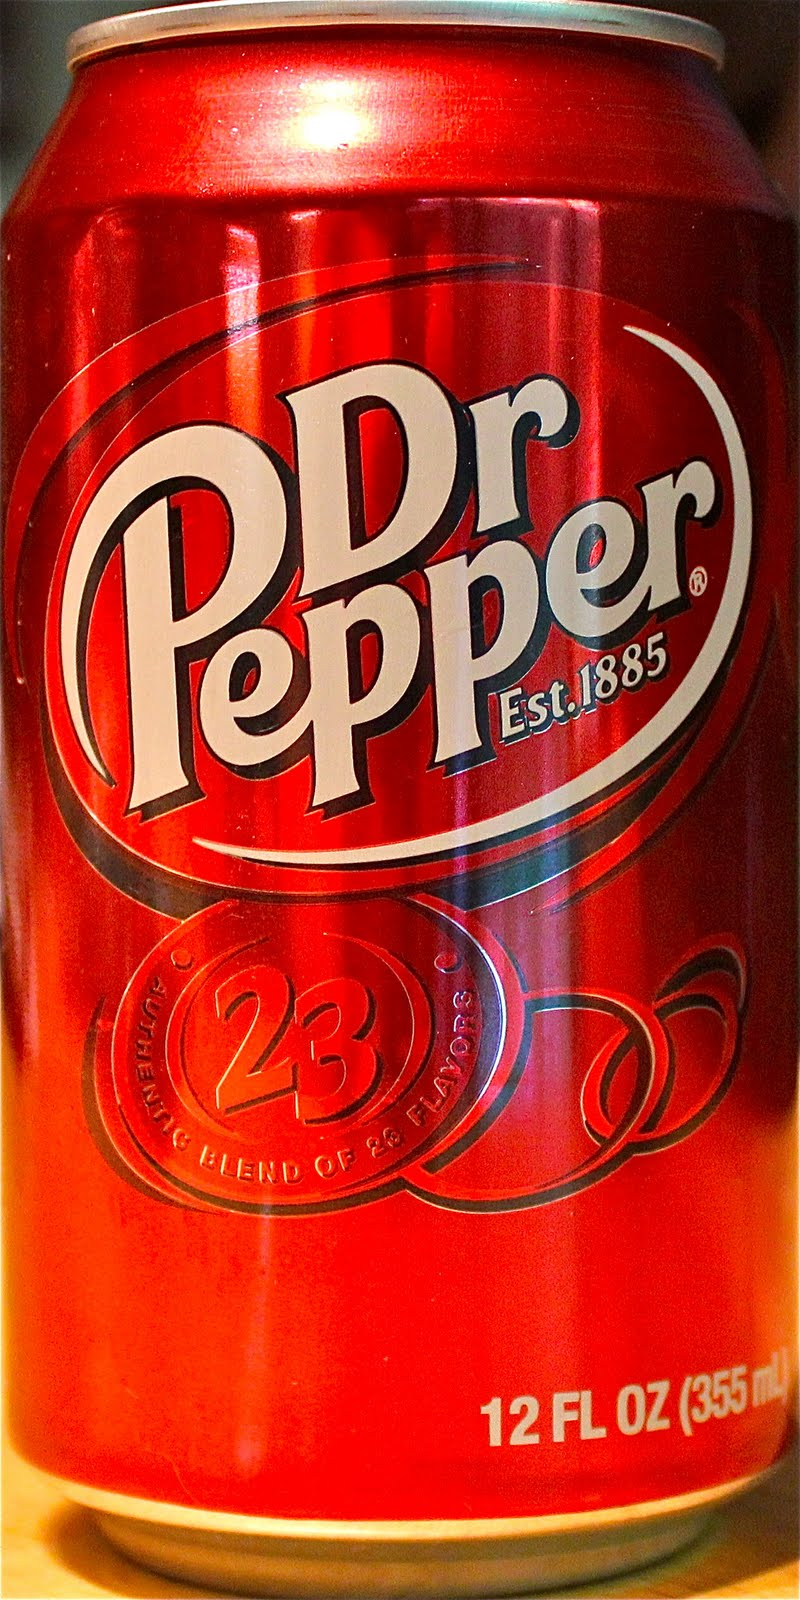 dr pepper ten consumer behavior The brand manager responsible for the dr pepper soft drink brand wants to know if their customers are actually as active as they are made out to be in dr pepper commercials.